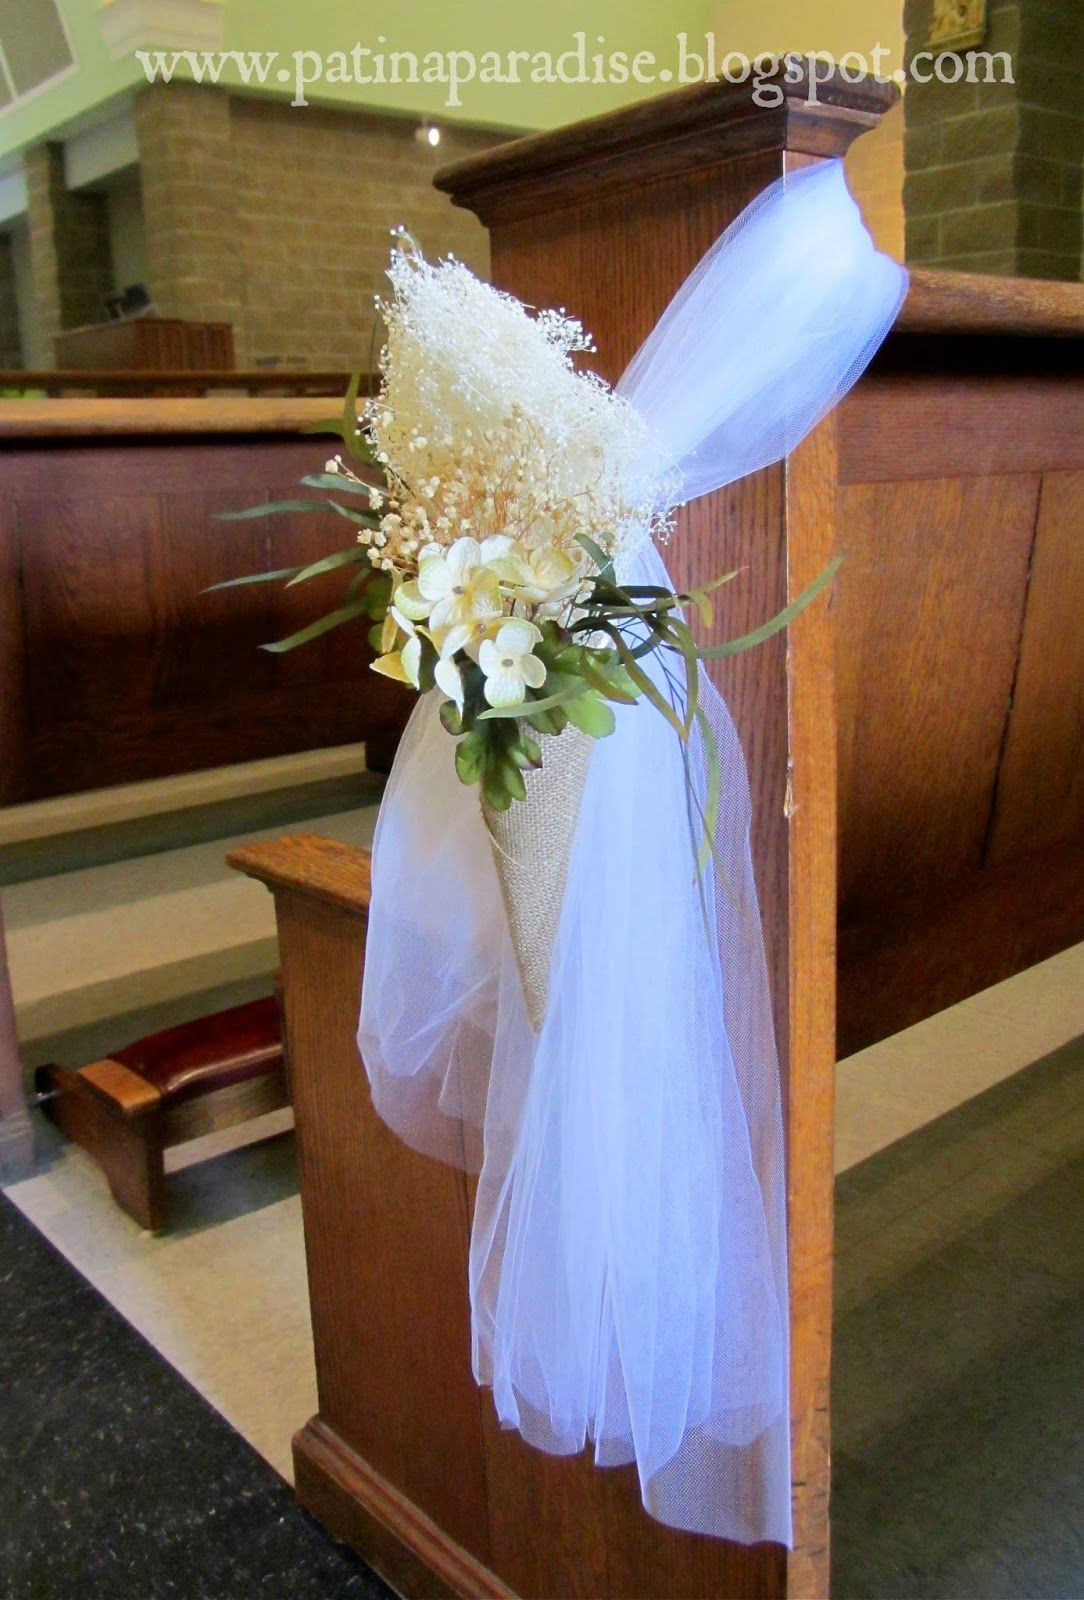 Fall wedding ideas diy reception table decor pinterest church churchpewweddingdecorations pew at the entrance to the church and then one on every other pew on junglespirit Choice Image